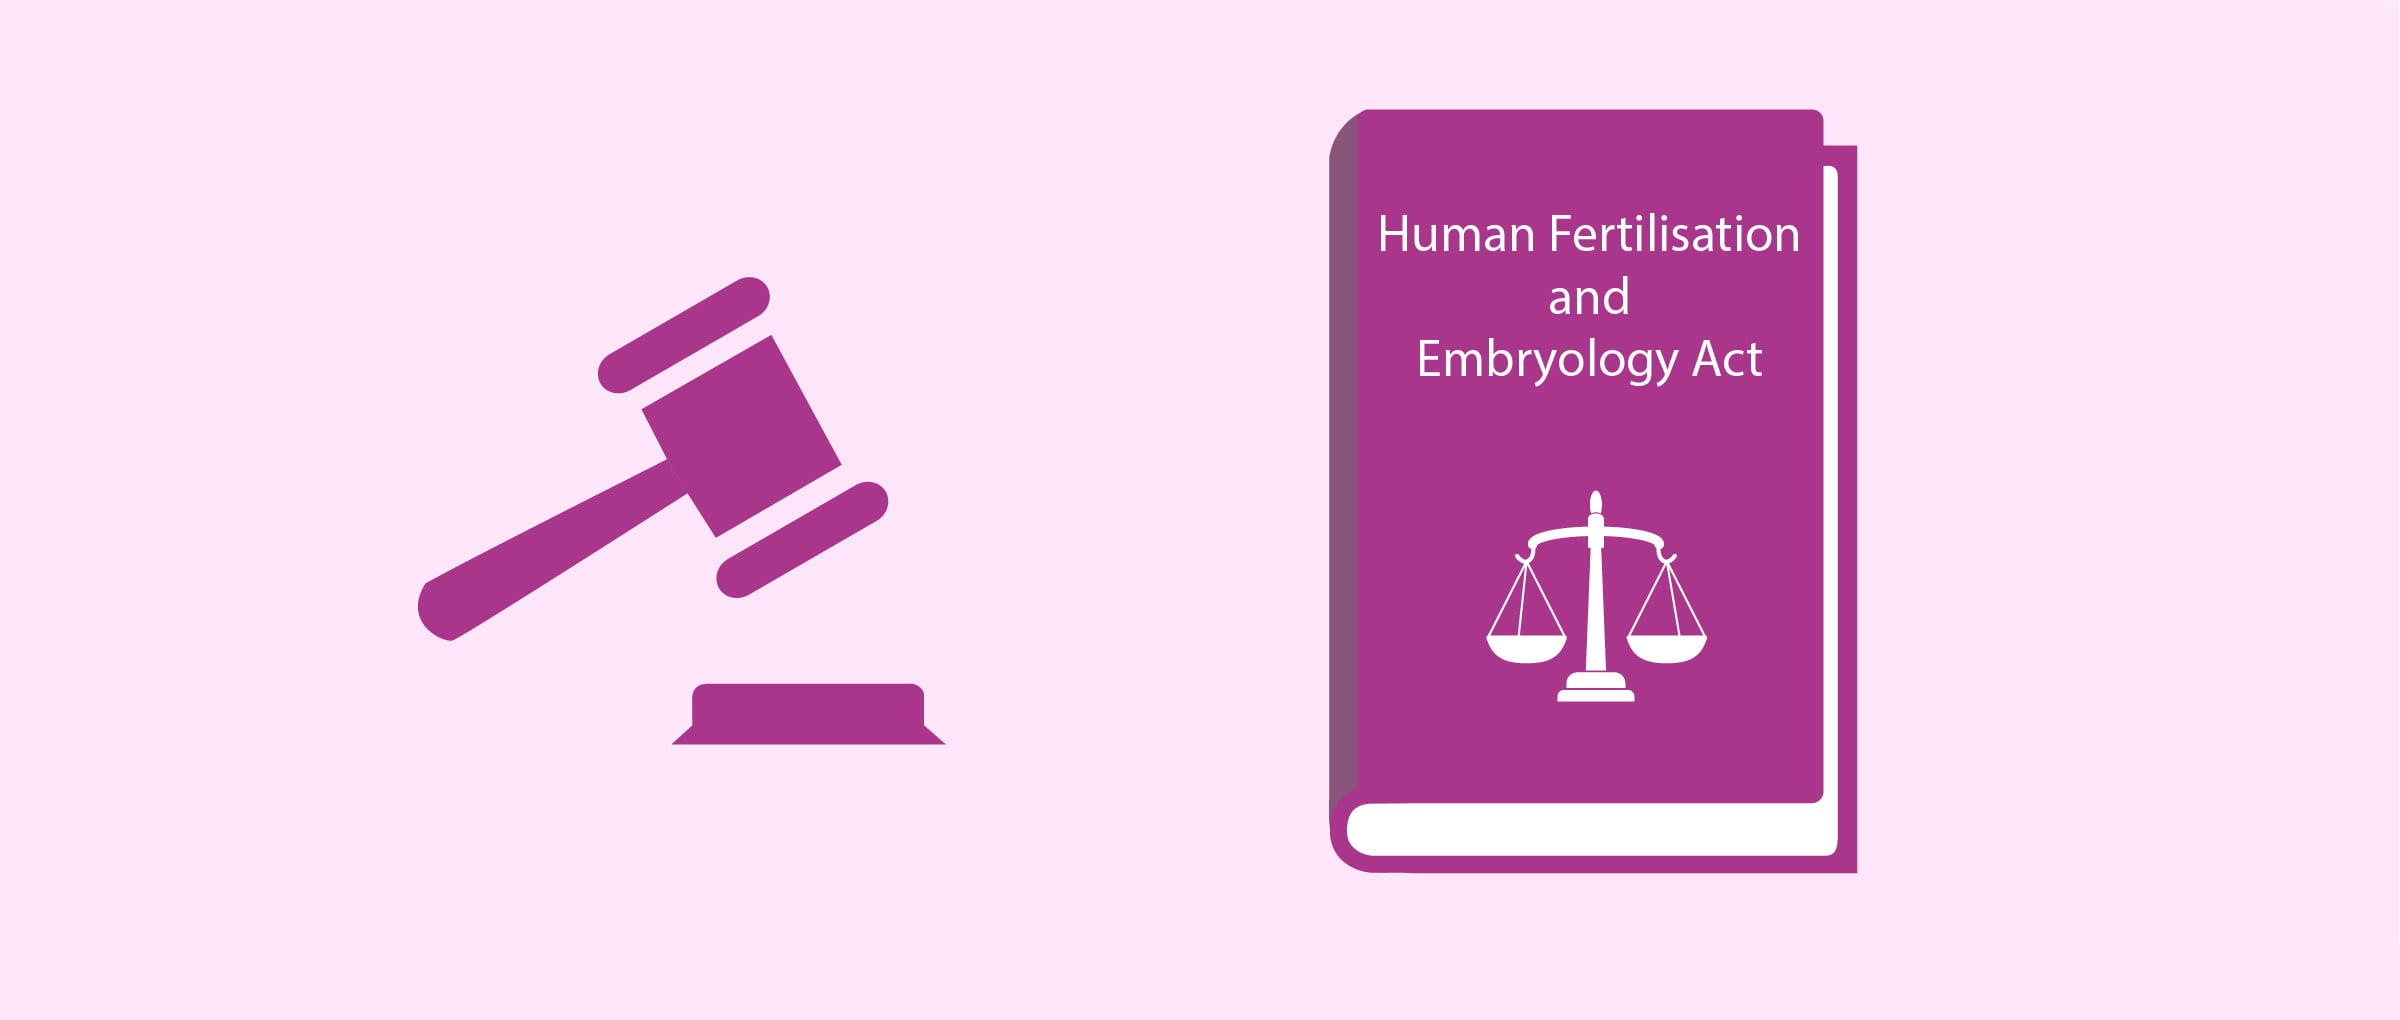 Egg Donation & UK Law - What Does the HFE Act 2008 Say?